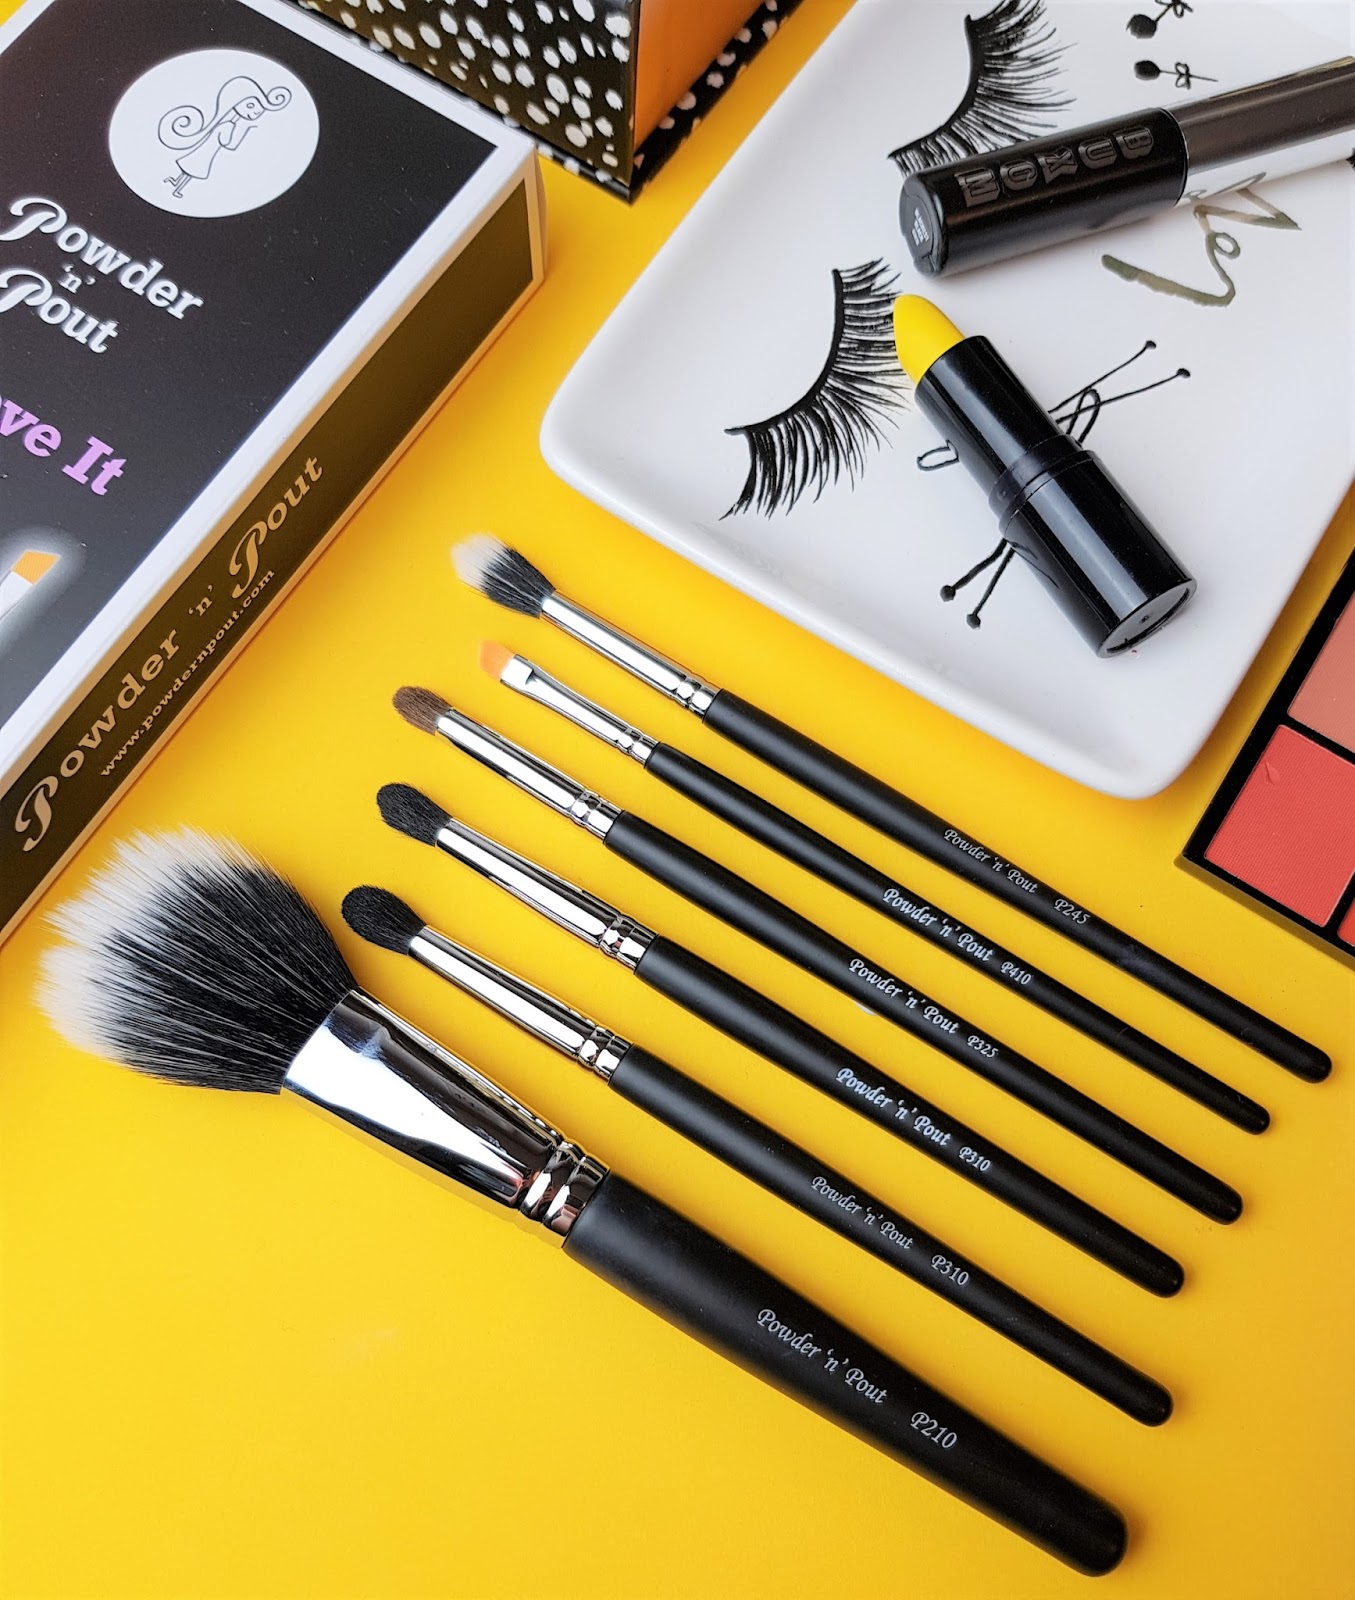 Powder 'n Pout make Up Brushes